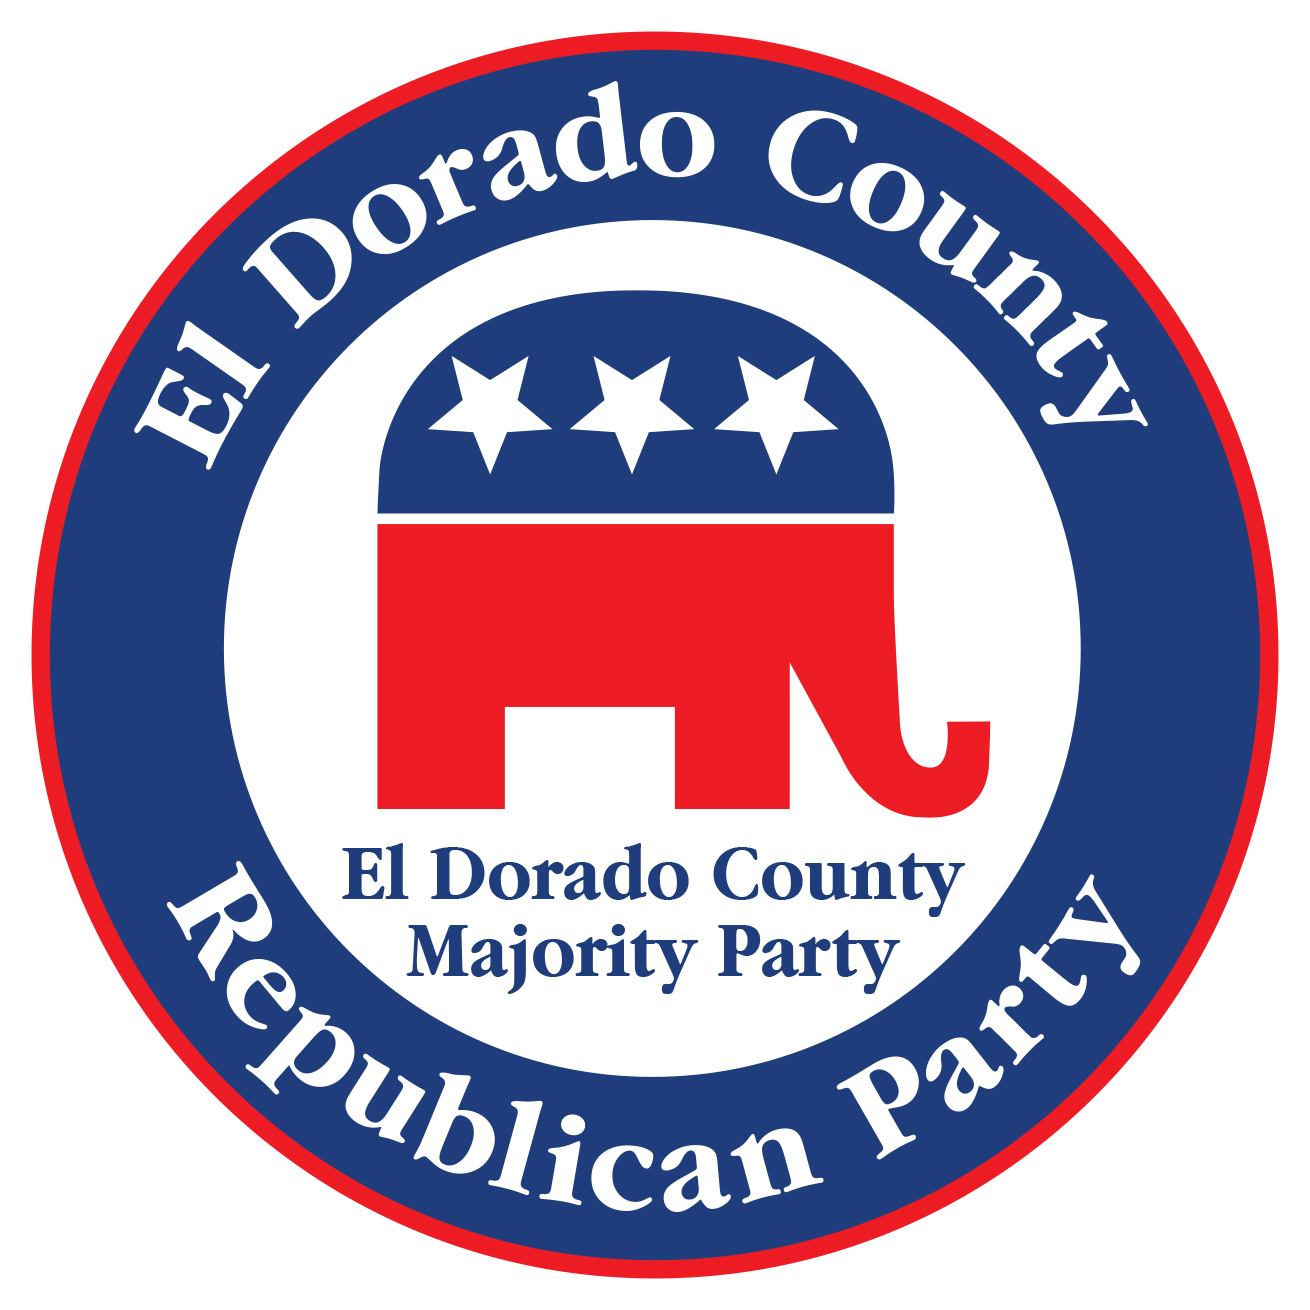 El Dorado County Republican Party